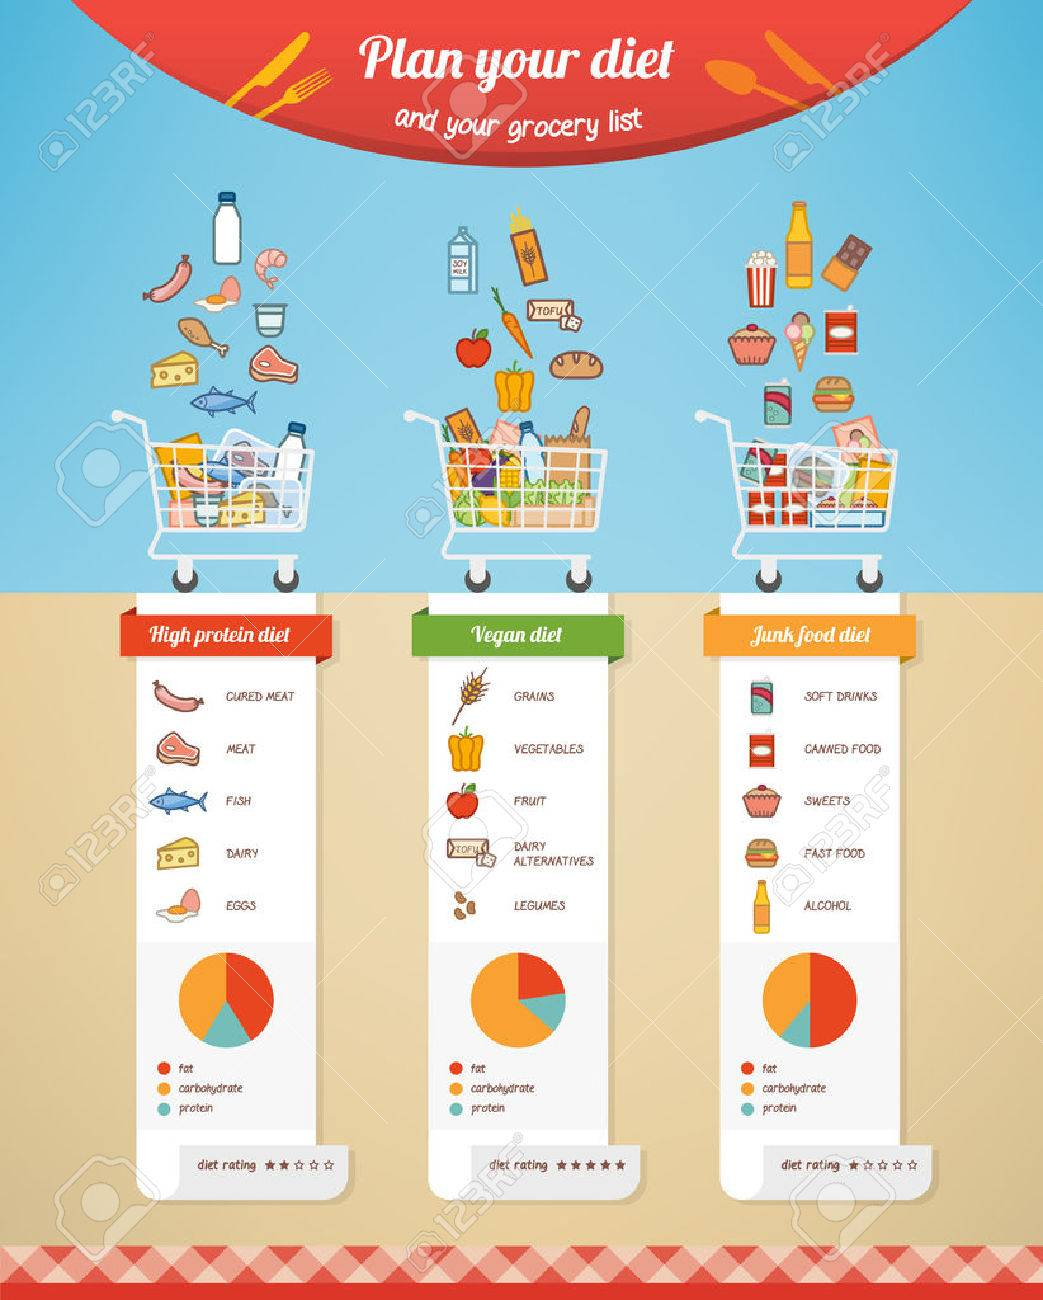 diet plan comparison infographic with grocery list nutrition